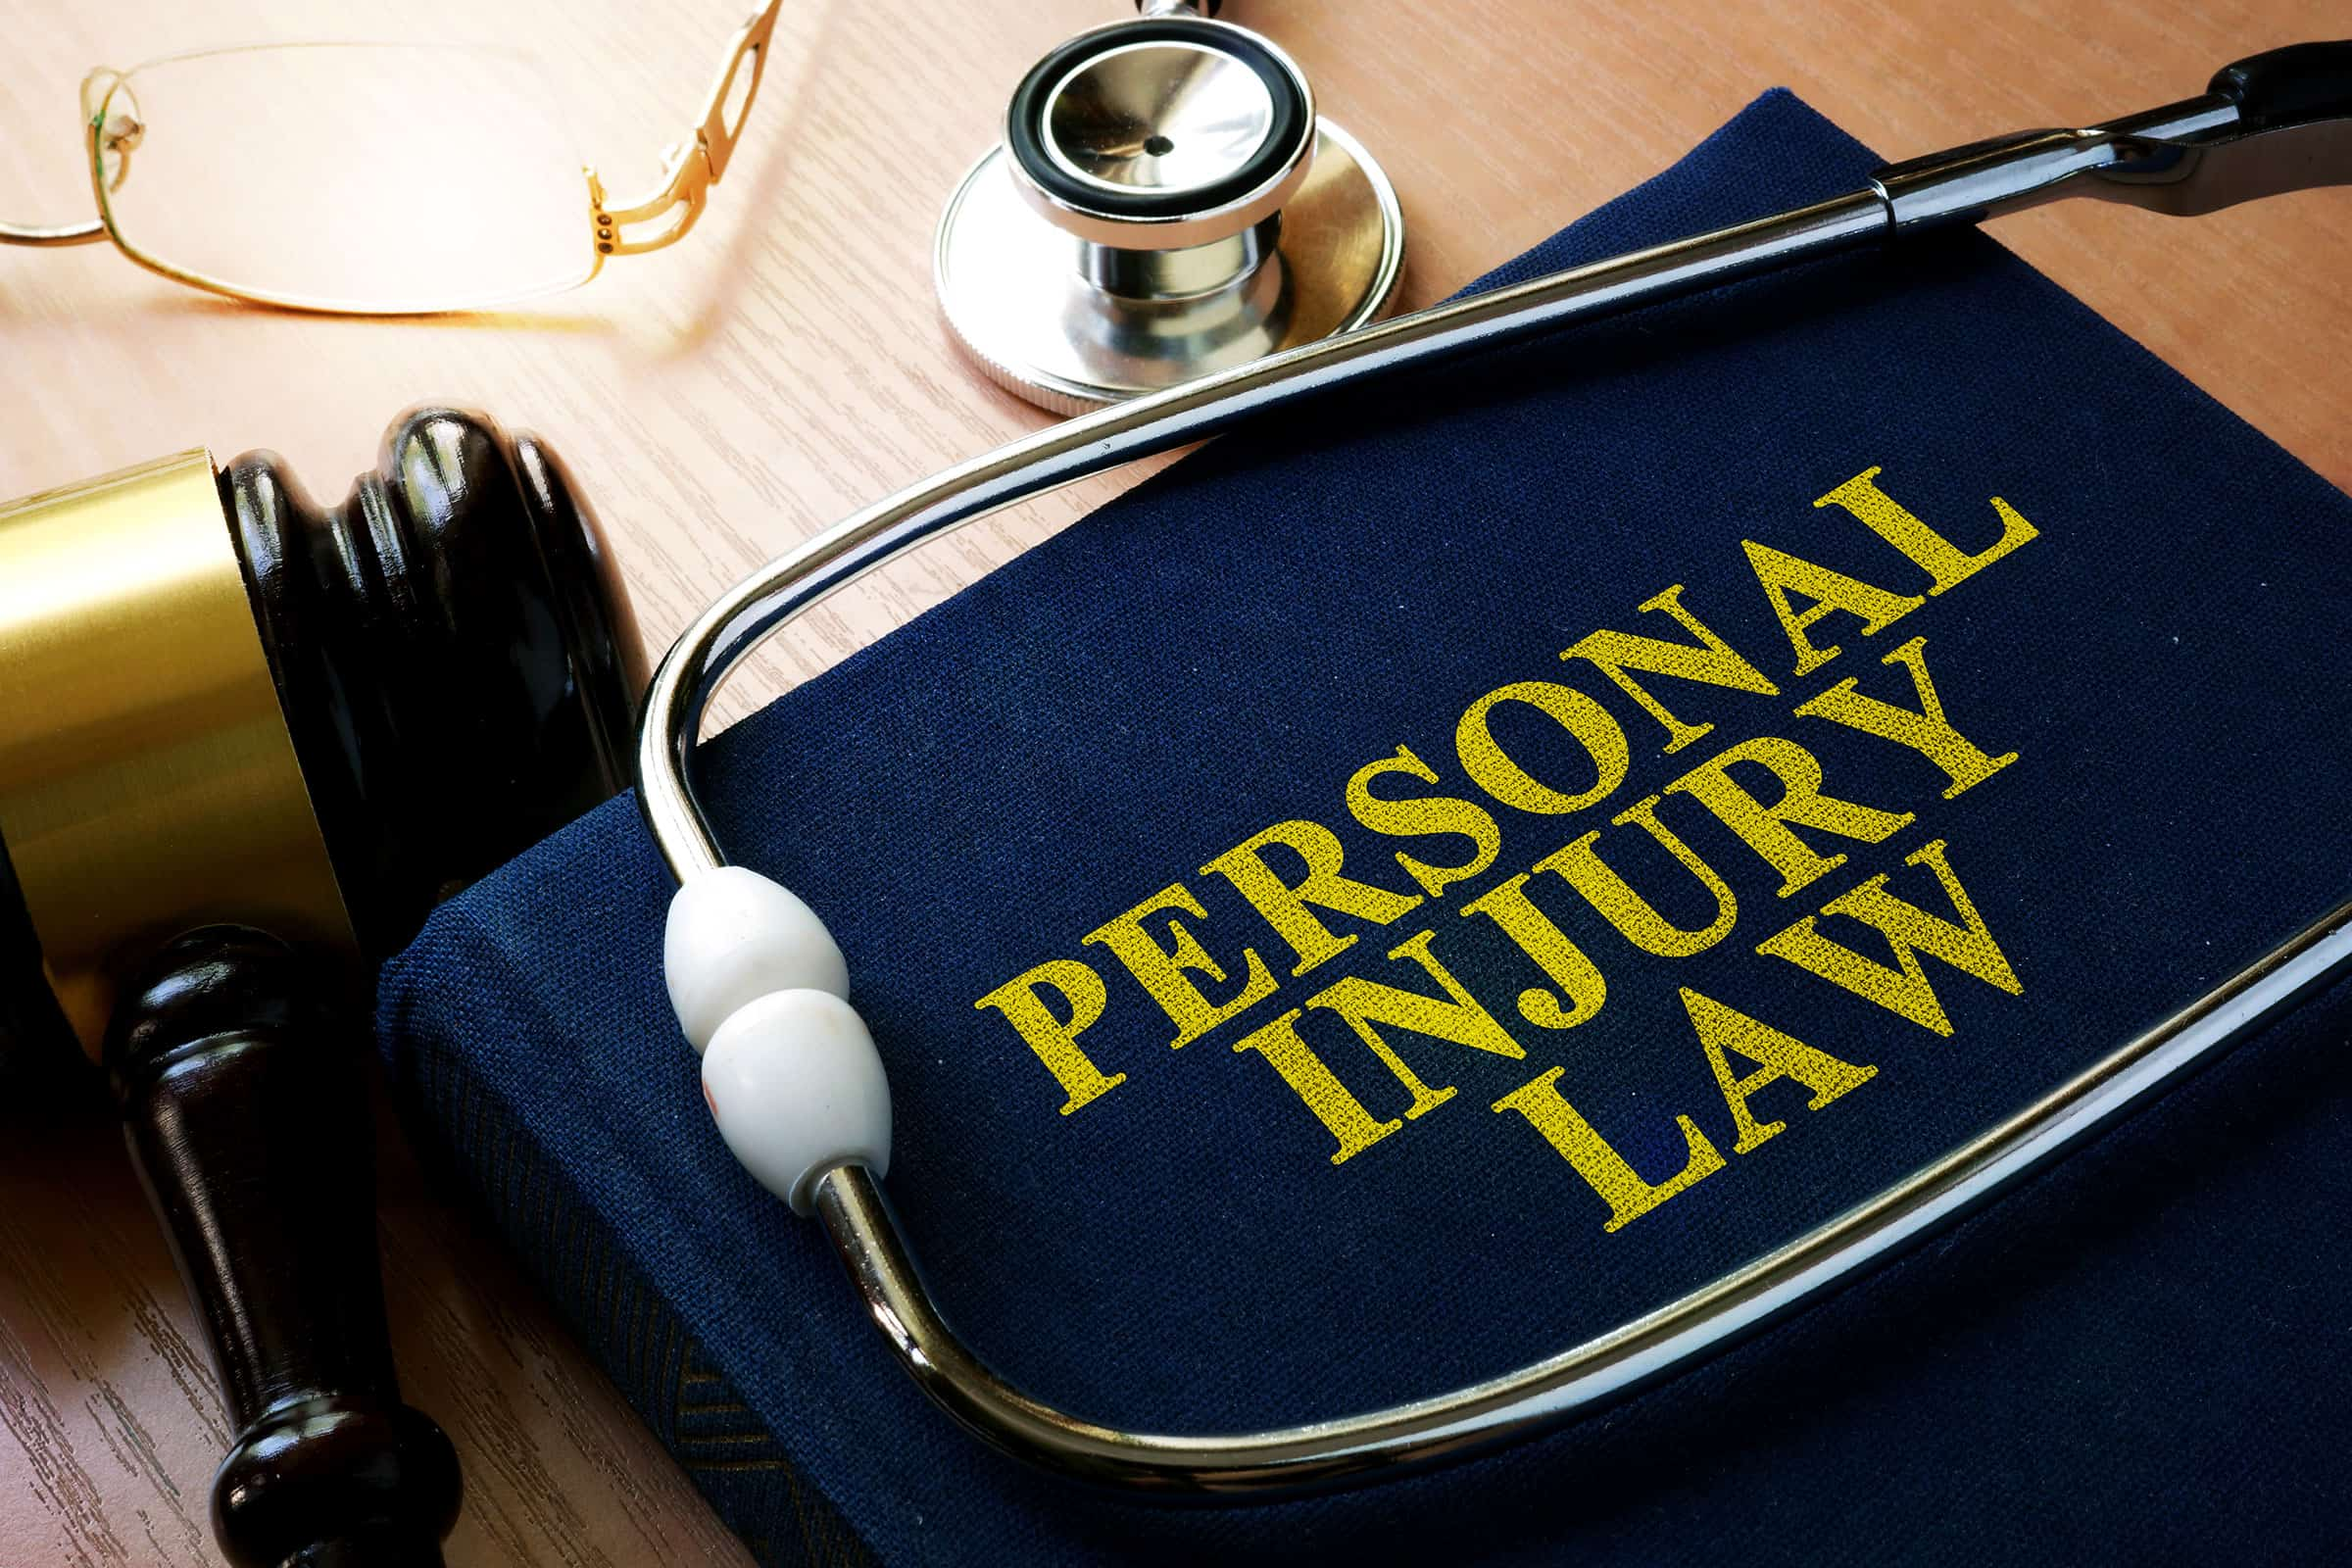 Personal injury law book, gavel and stethoscope